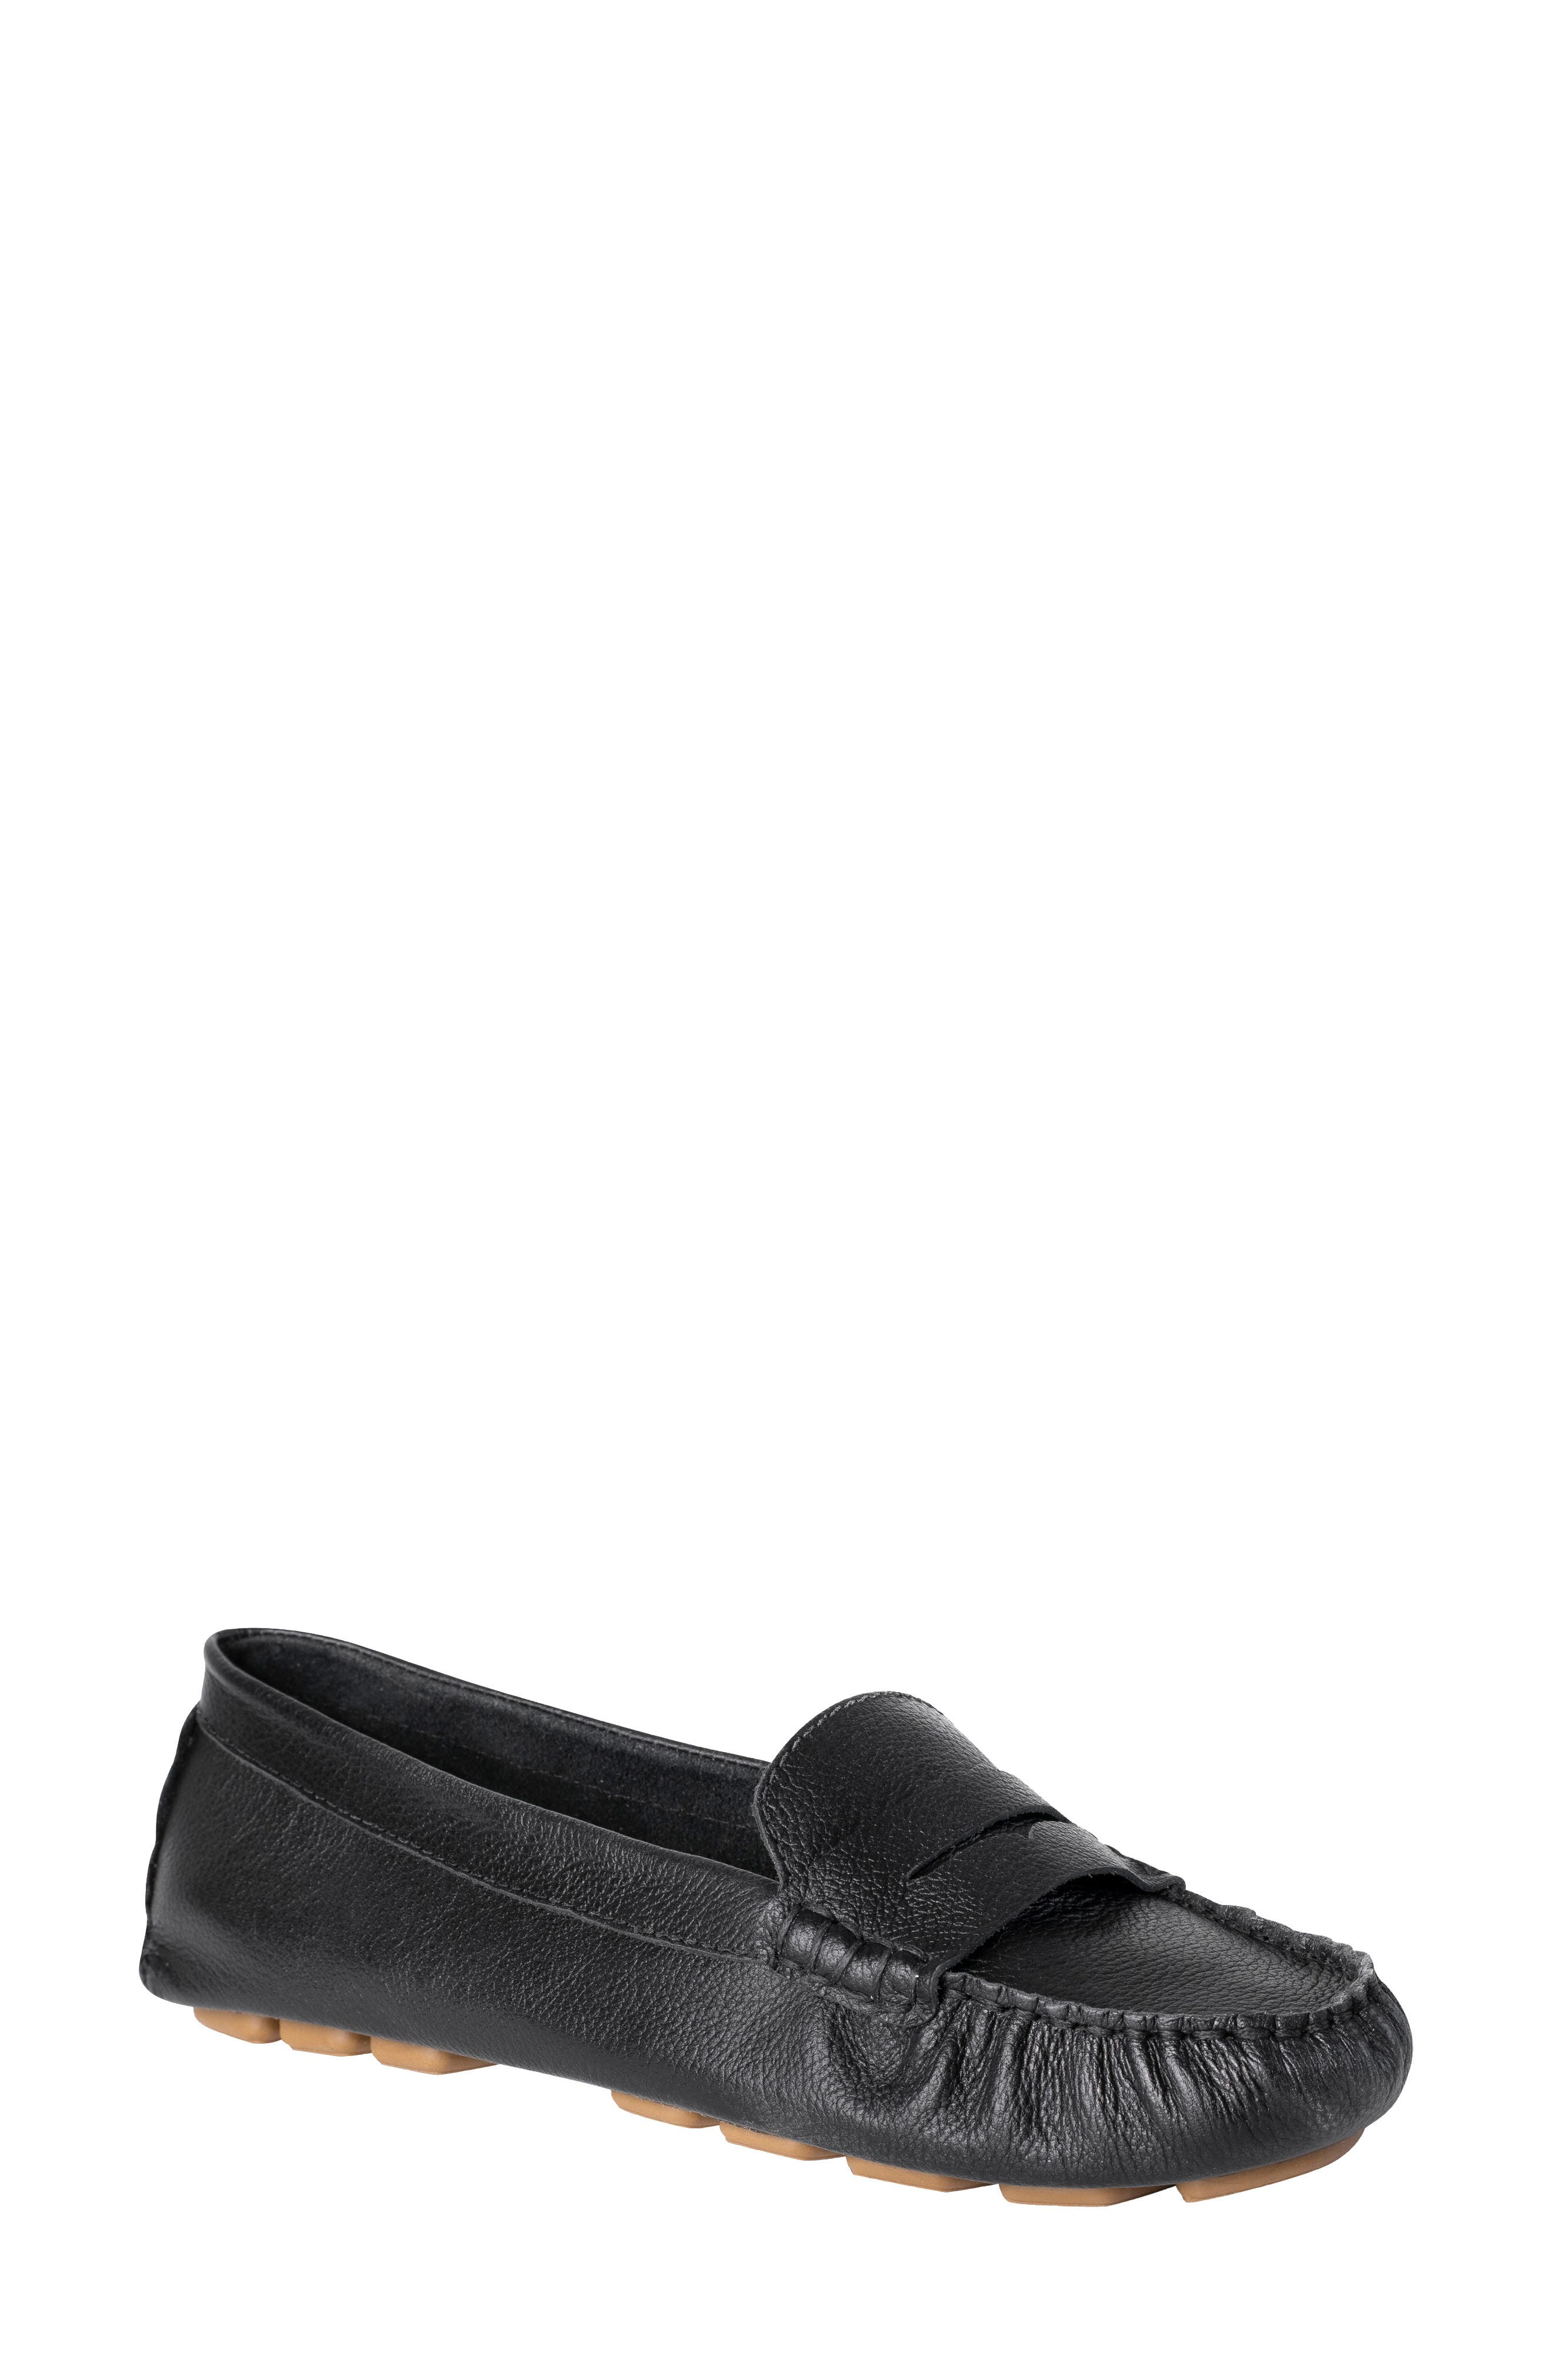 Ukies Driving Moccasin Loafer EU - Black